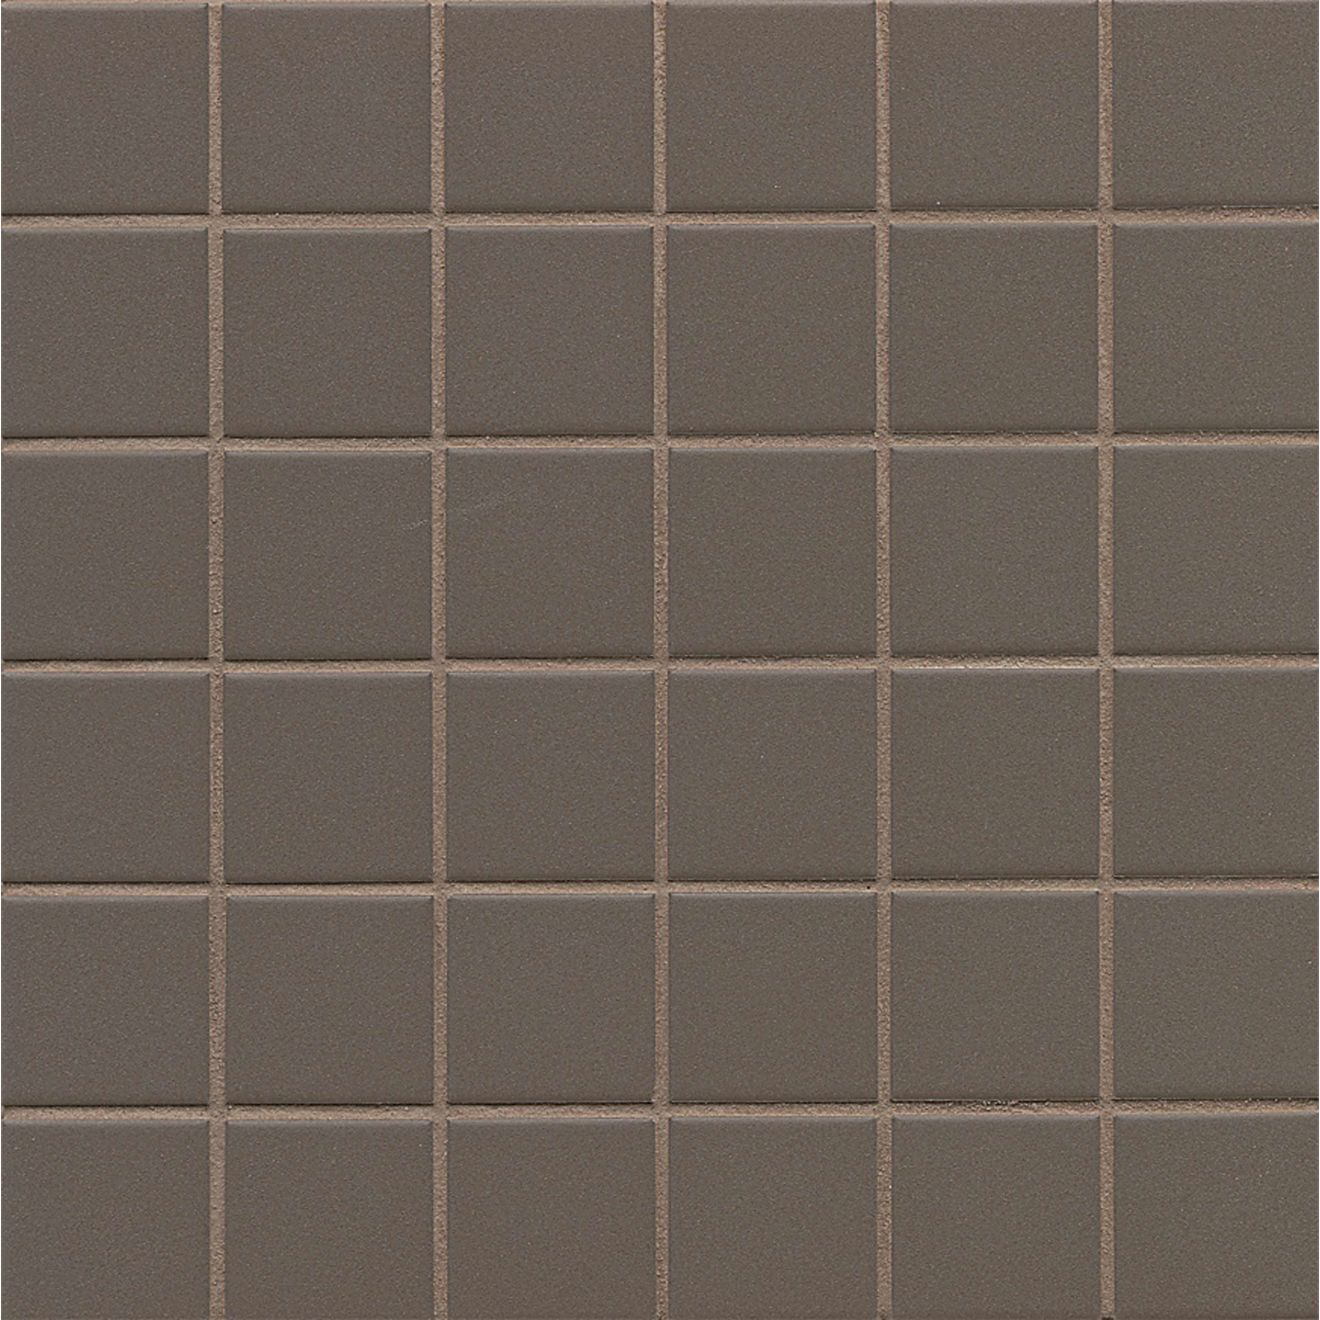 Elements Floor & Wall Mosaic in Graphite Grey